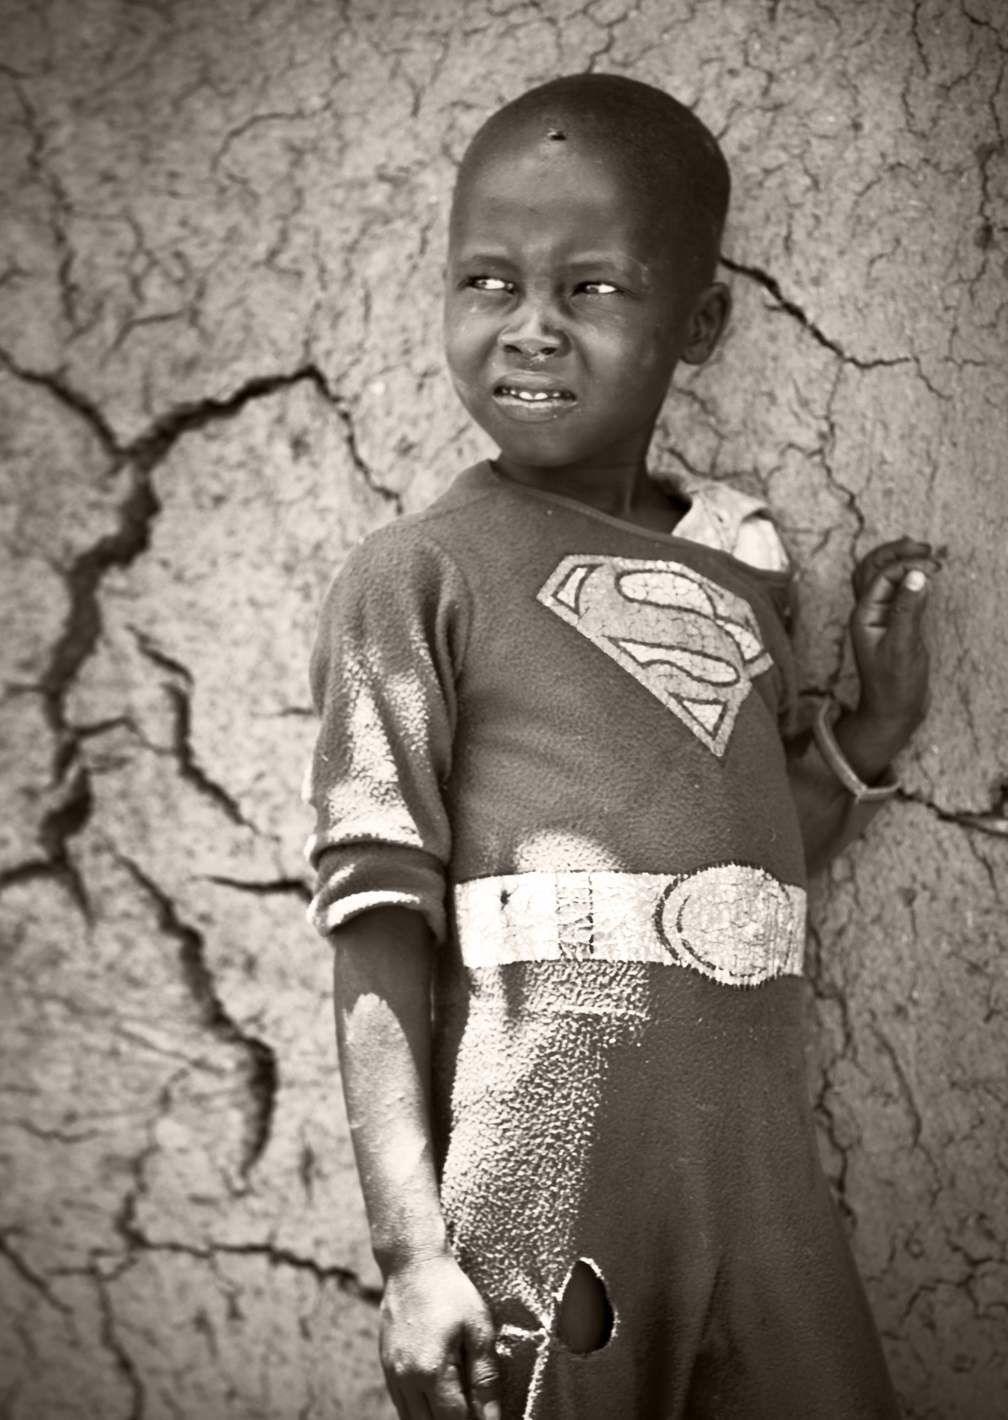 KE_Superman_1024_bw.jpg